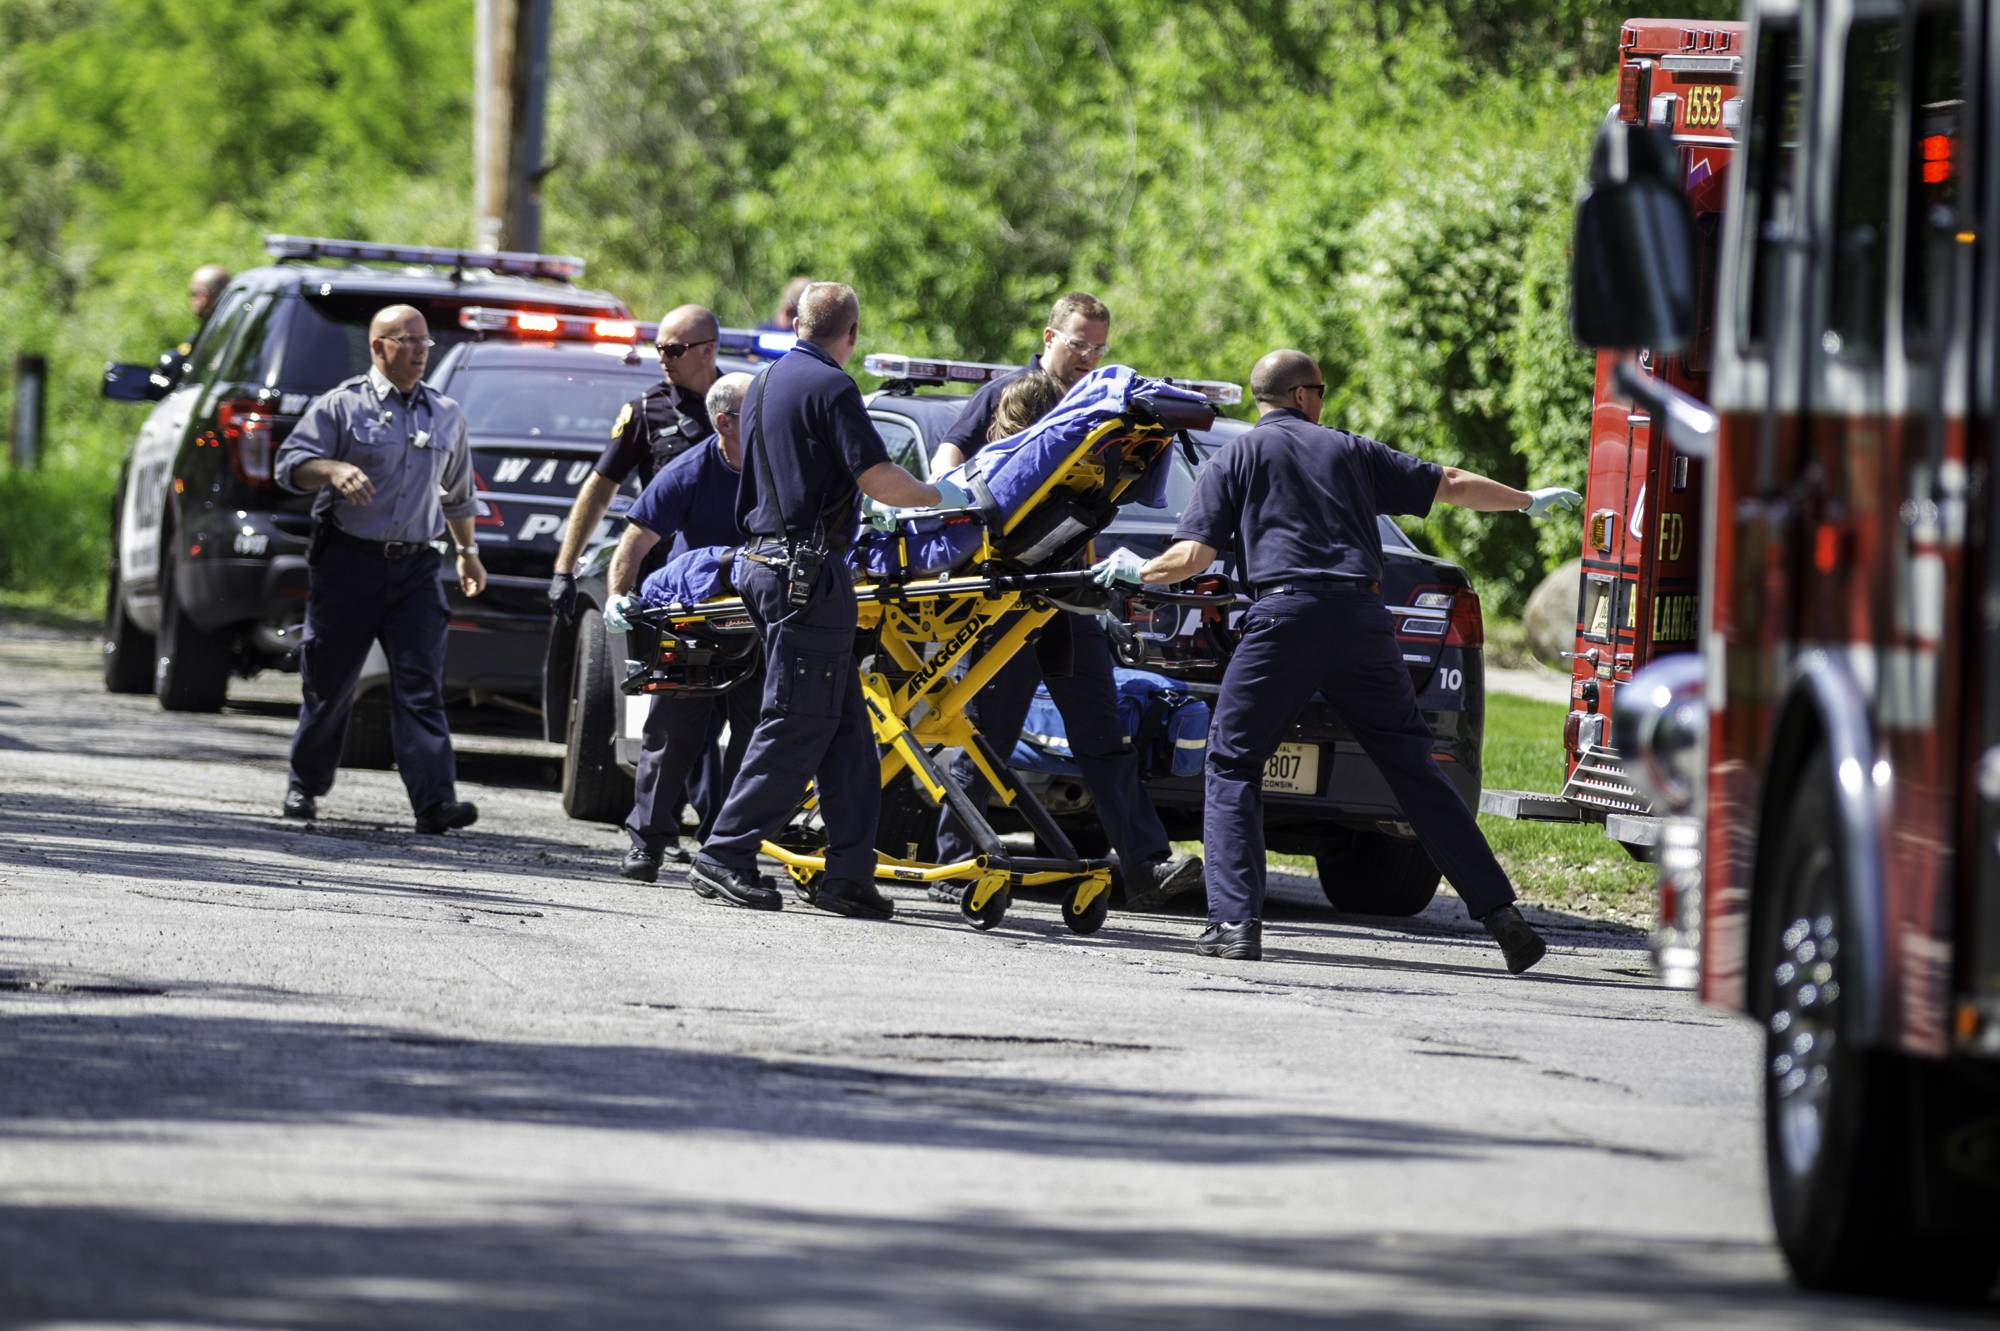 Rescue workers take a stabbing victim to the ambulance in Waukesha, Wis., Saturday. Prosecutors say two 12-year-old southeastern Wisconsin girls stabbed their 12-year-old friend nearly to death in the woods to please a mythological creature they learned about online.